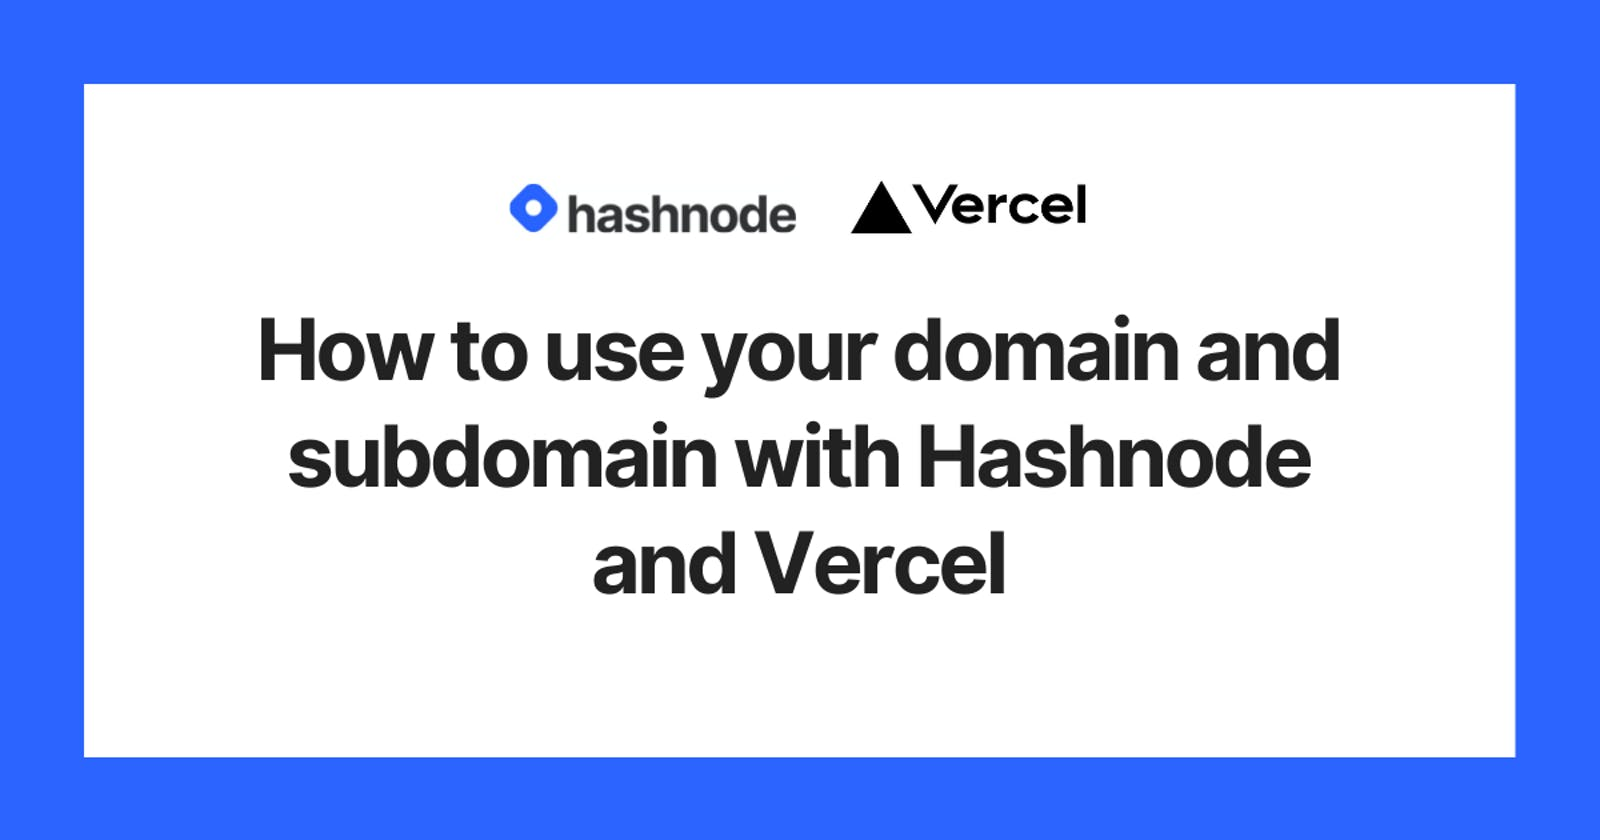 How to use your domain and subdomain with Hashnode and Vercel